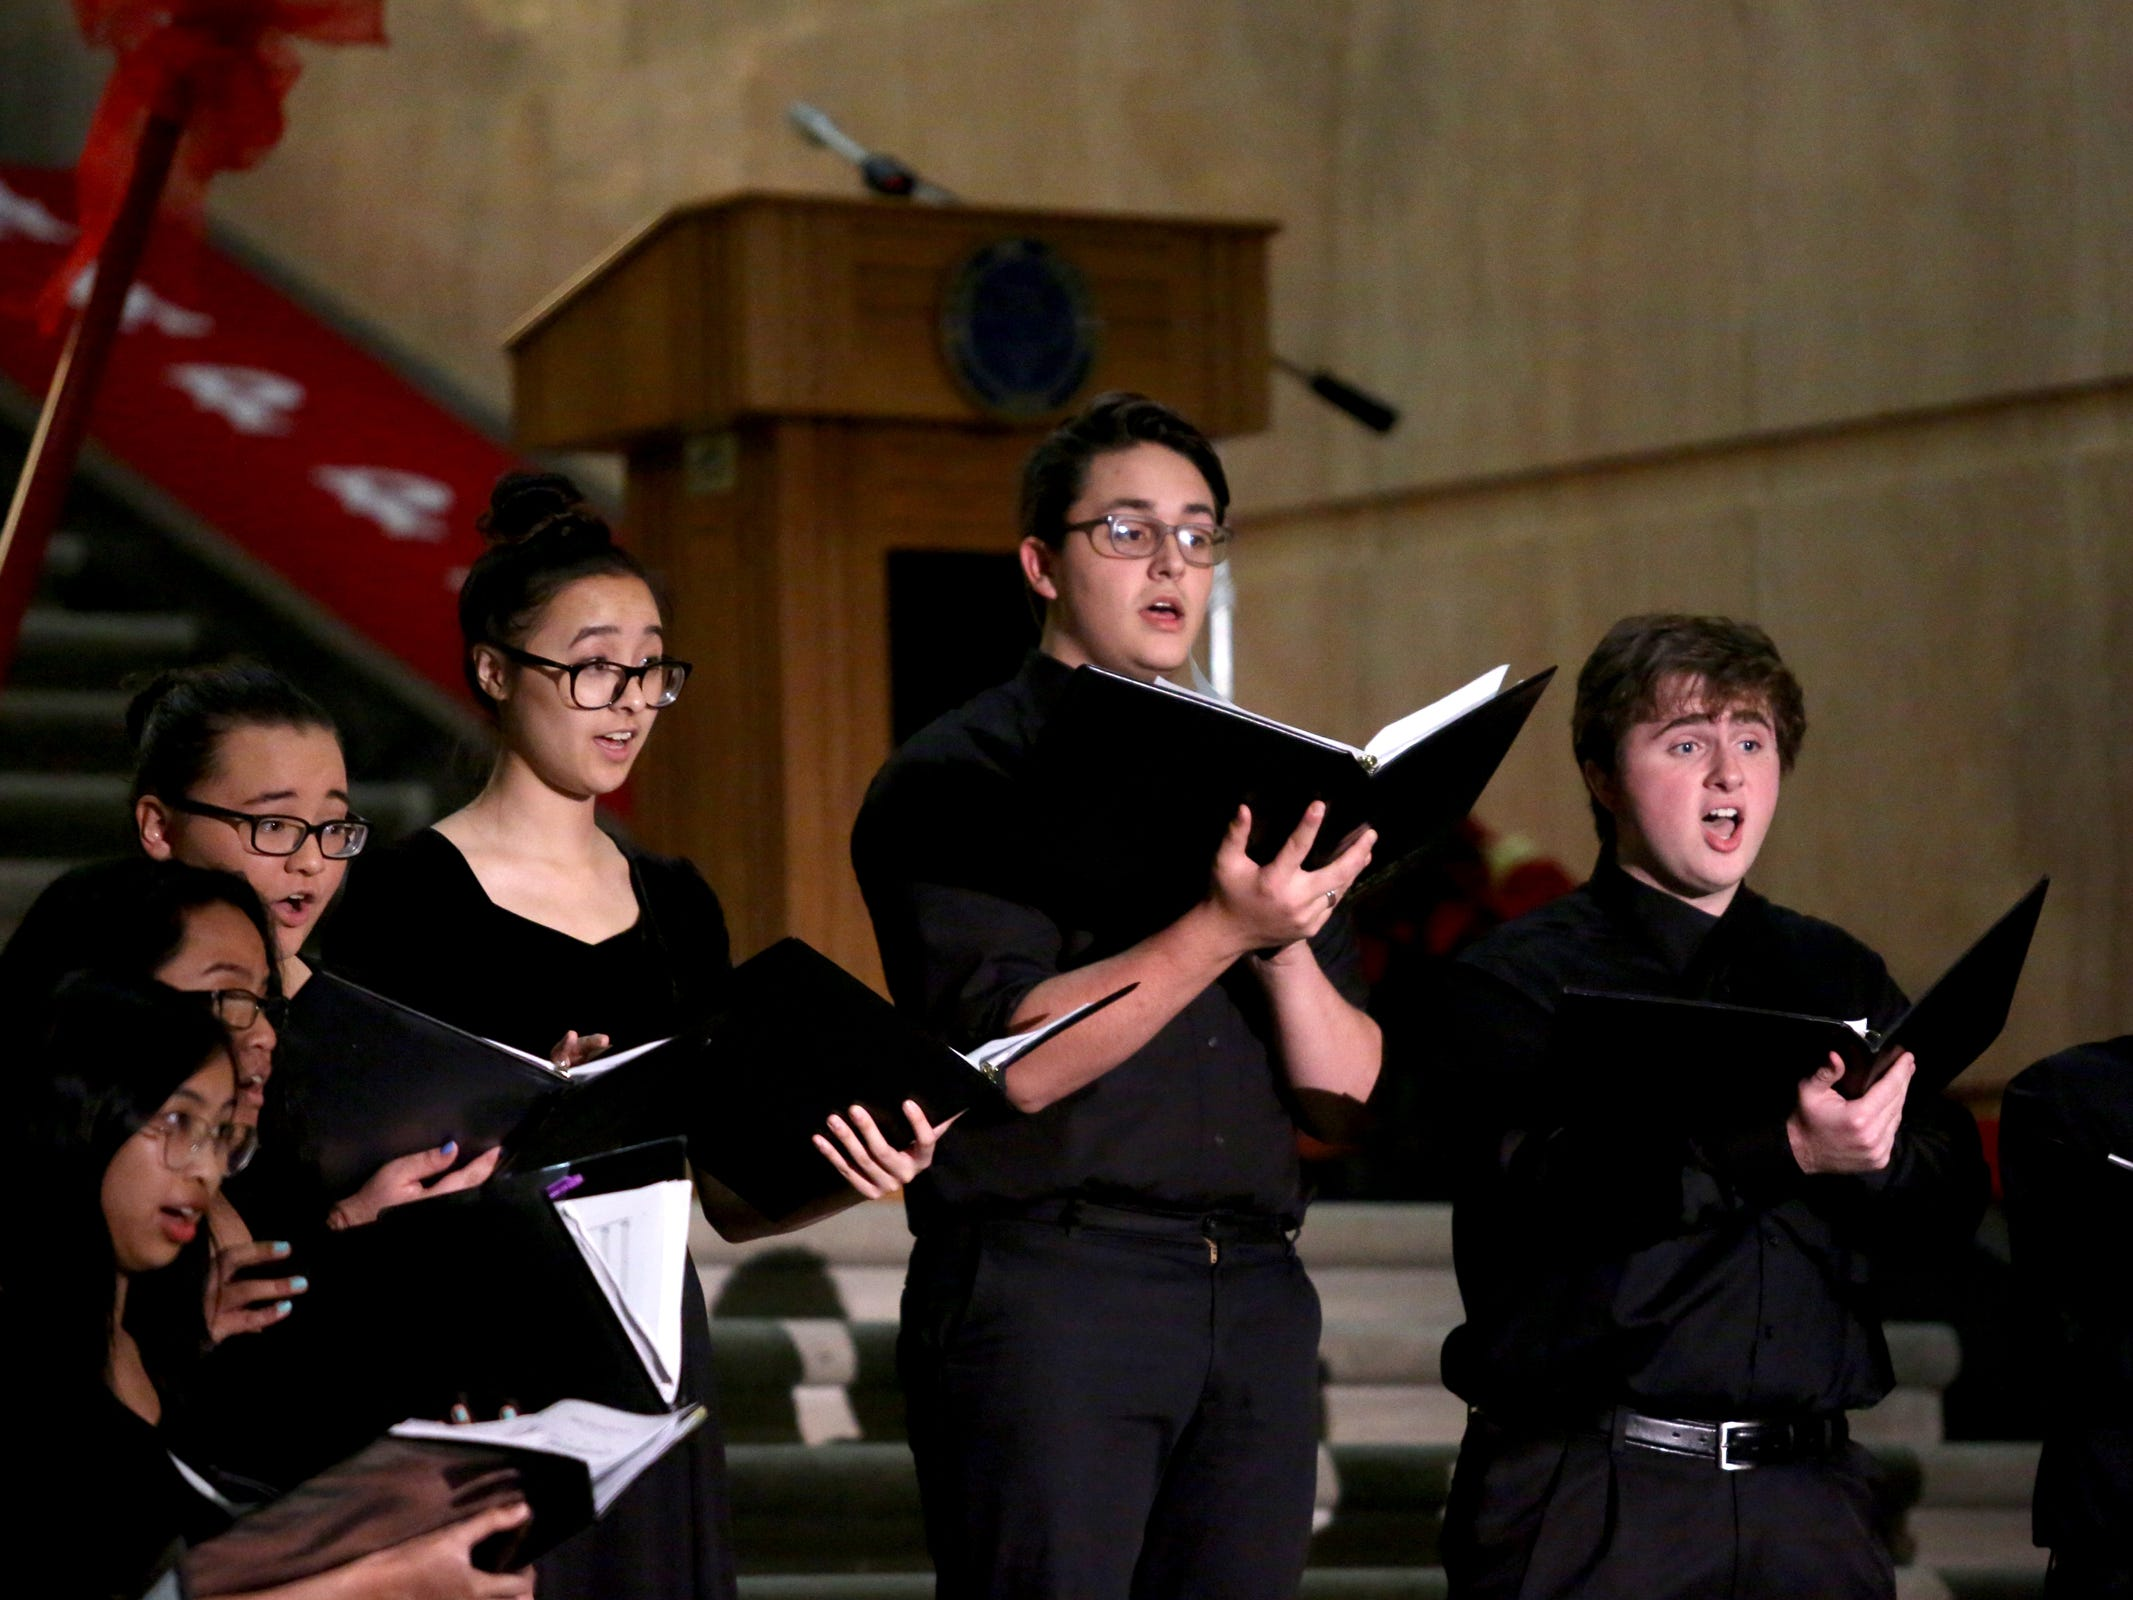 South Salem High School choir students perform during the Holiday Tree Lighting Celebration at the Oregon State Capitol in Salem on Tuesday, Nov. 27, 2018.